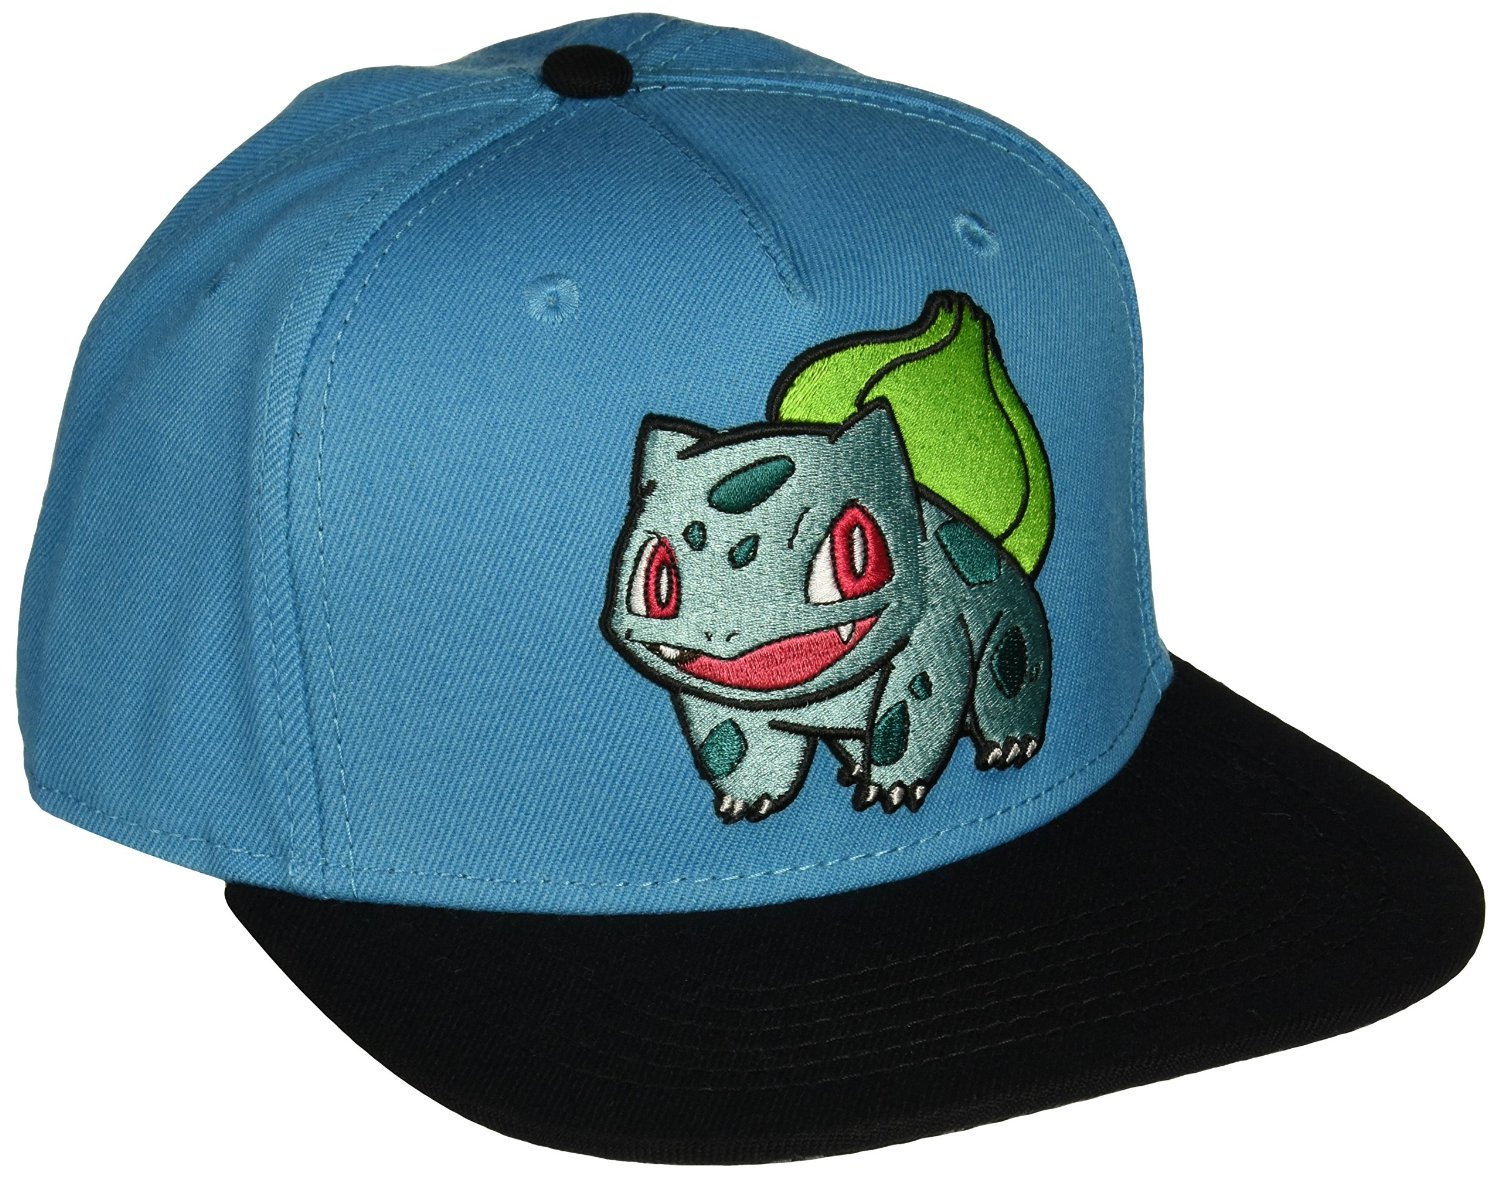 Buy BIOWORLD Pokemon Charizard Snapback Cap in Cheap Price on ... 54e4fed85c64